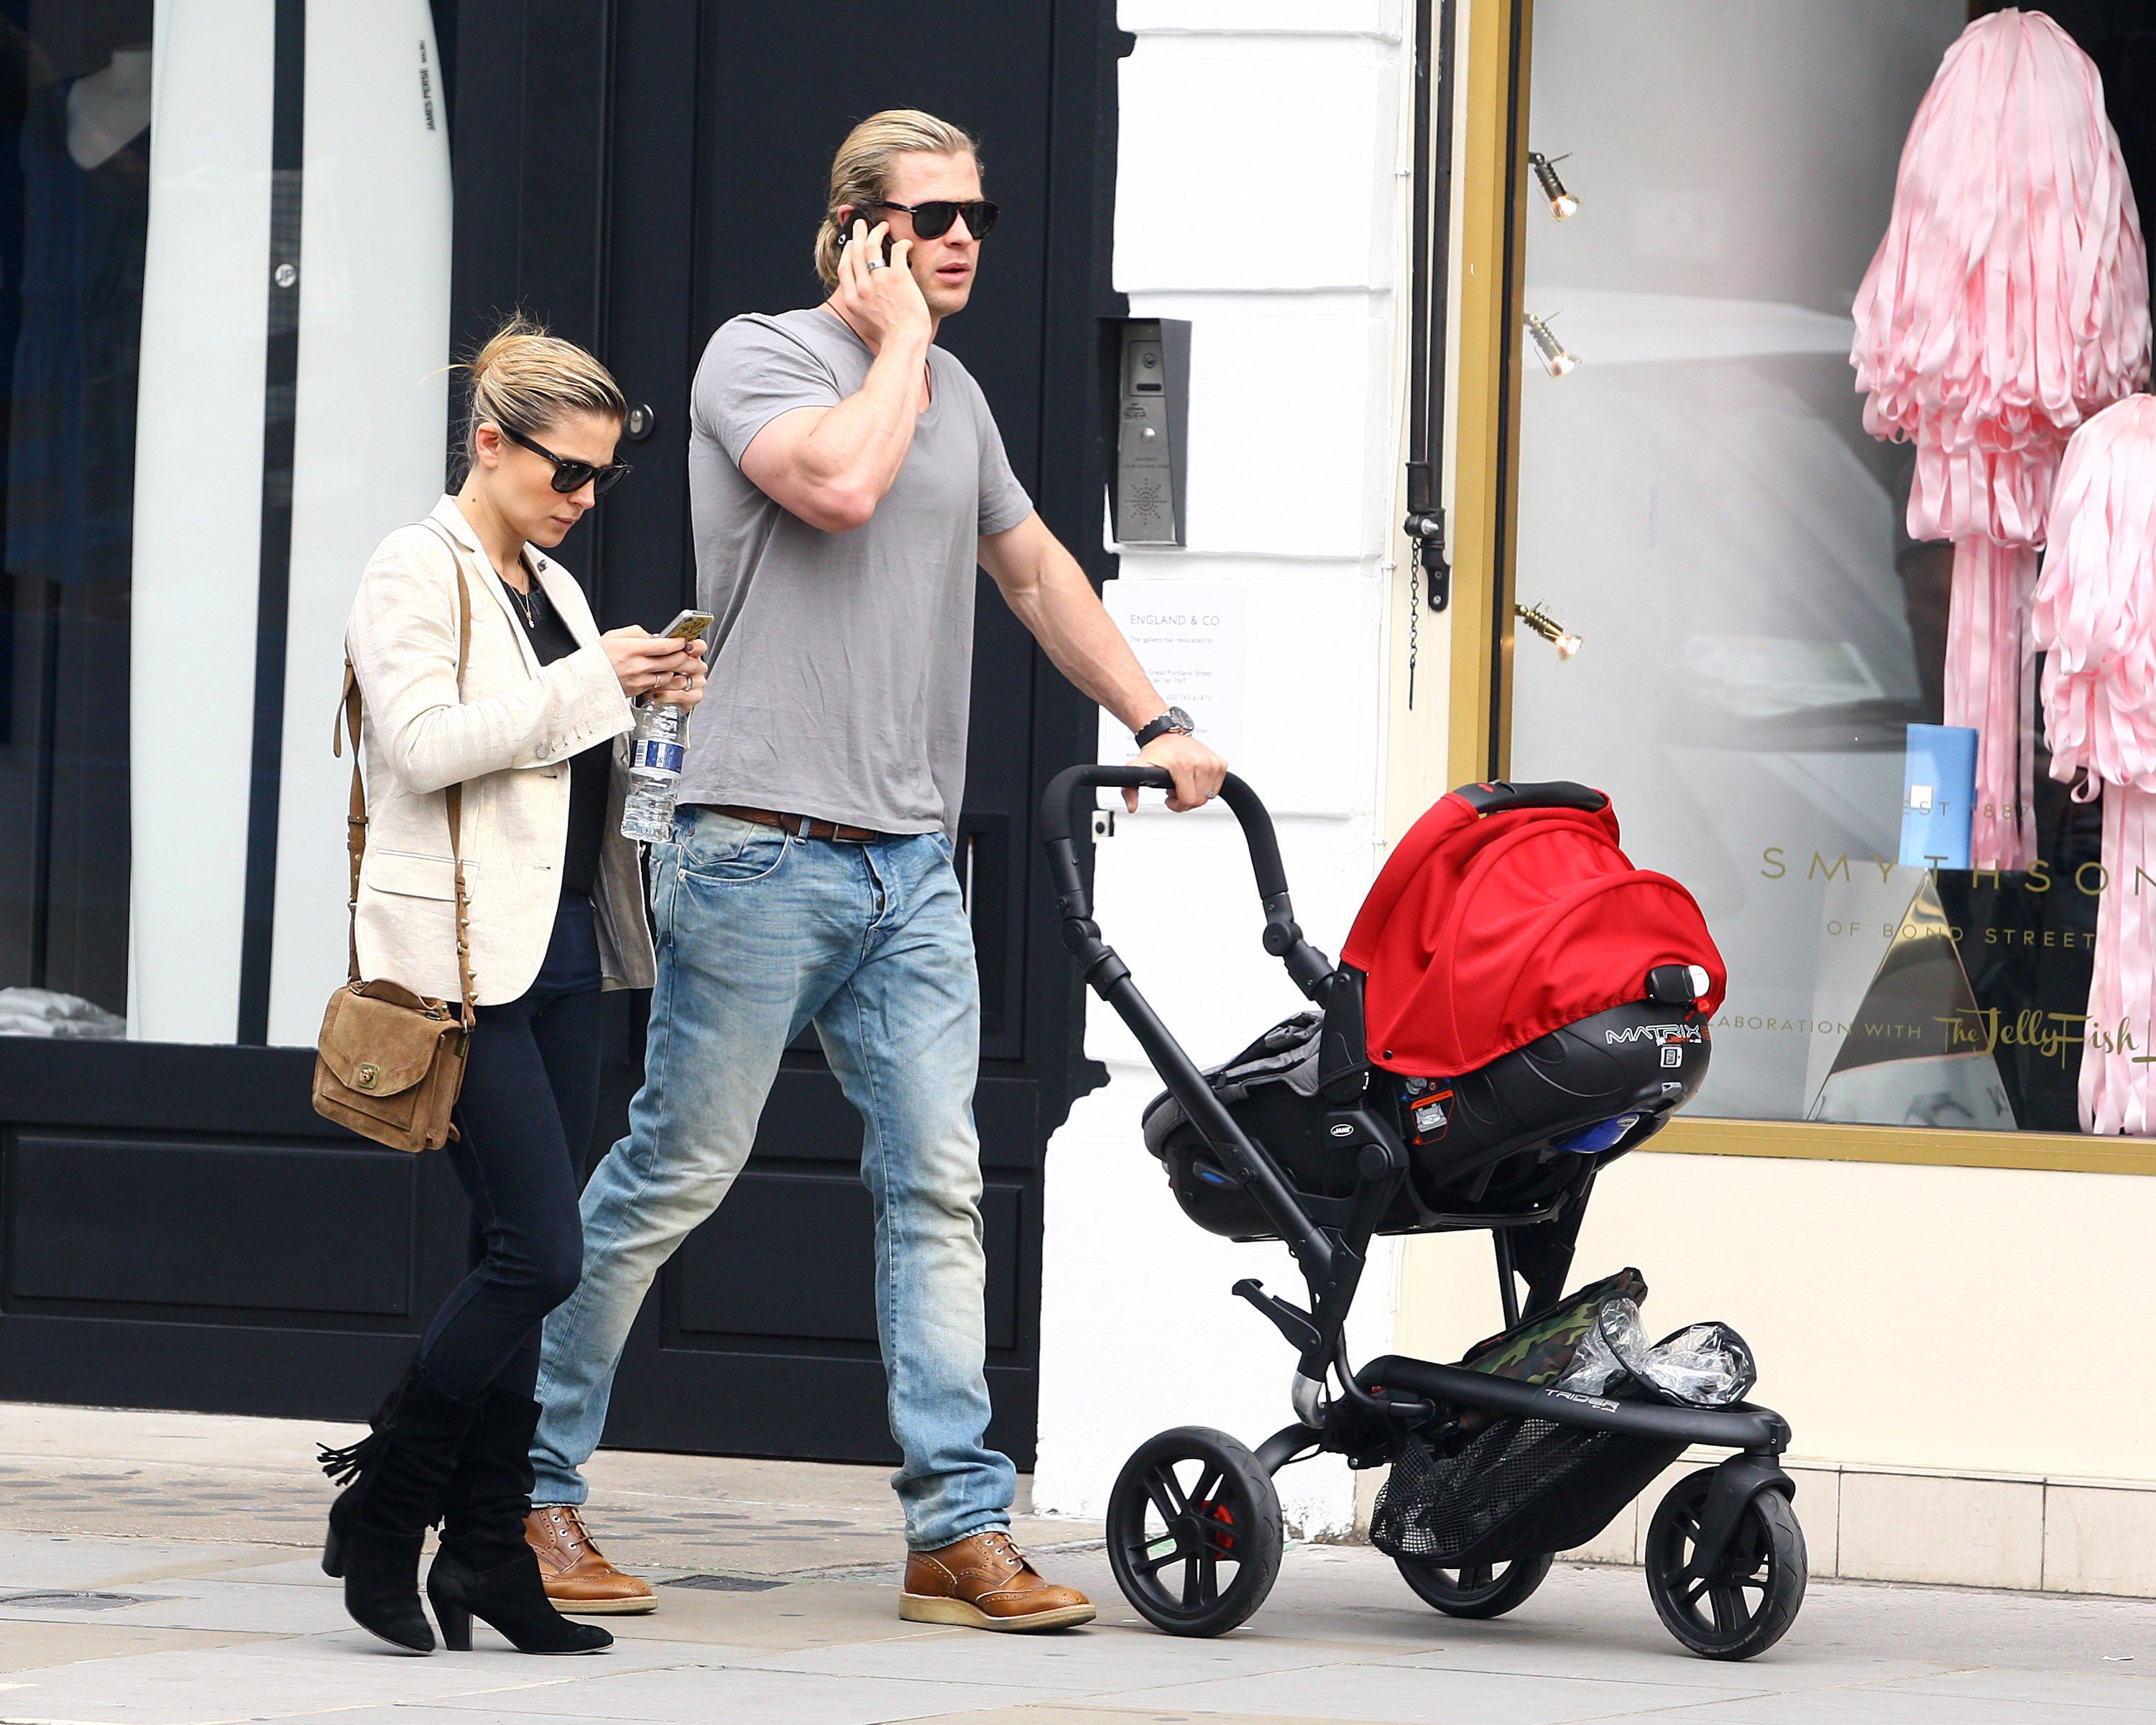 Chris Hemsworth and his wife Elsa Pataky | Source: Getty Images